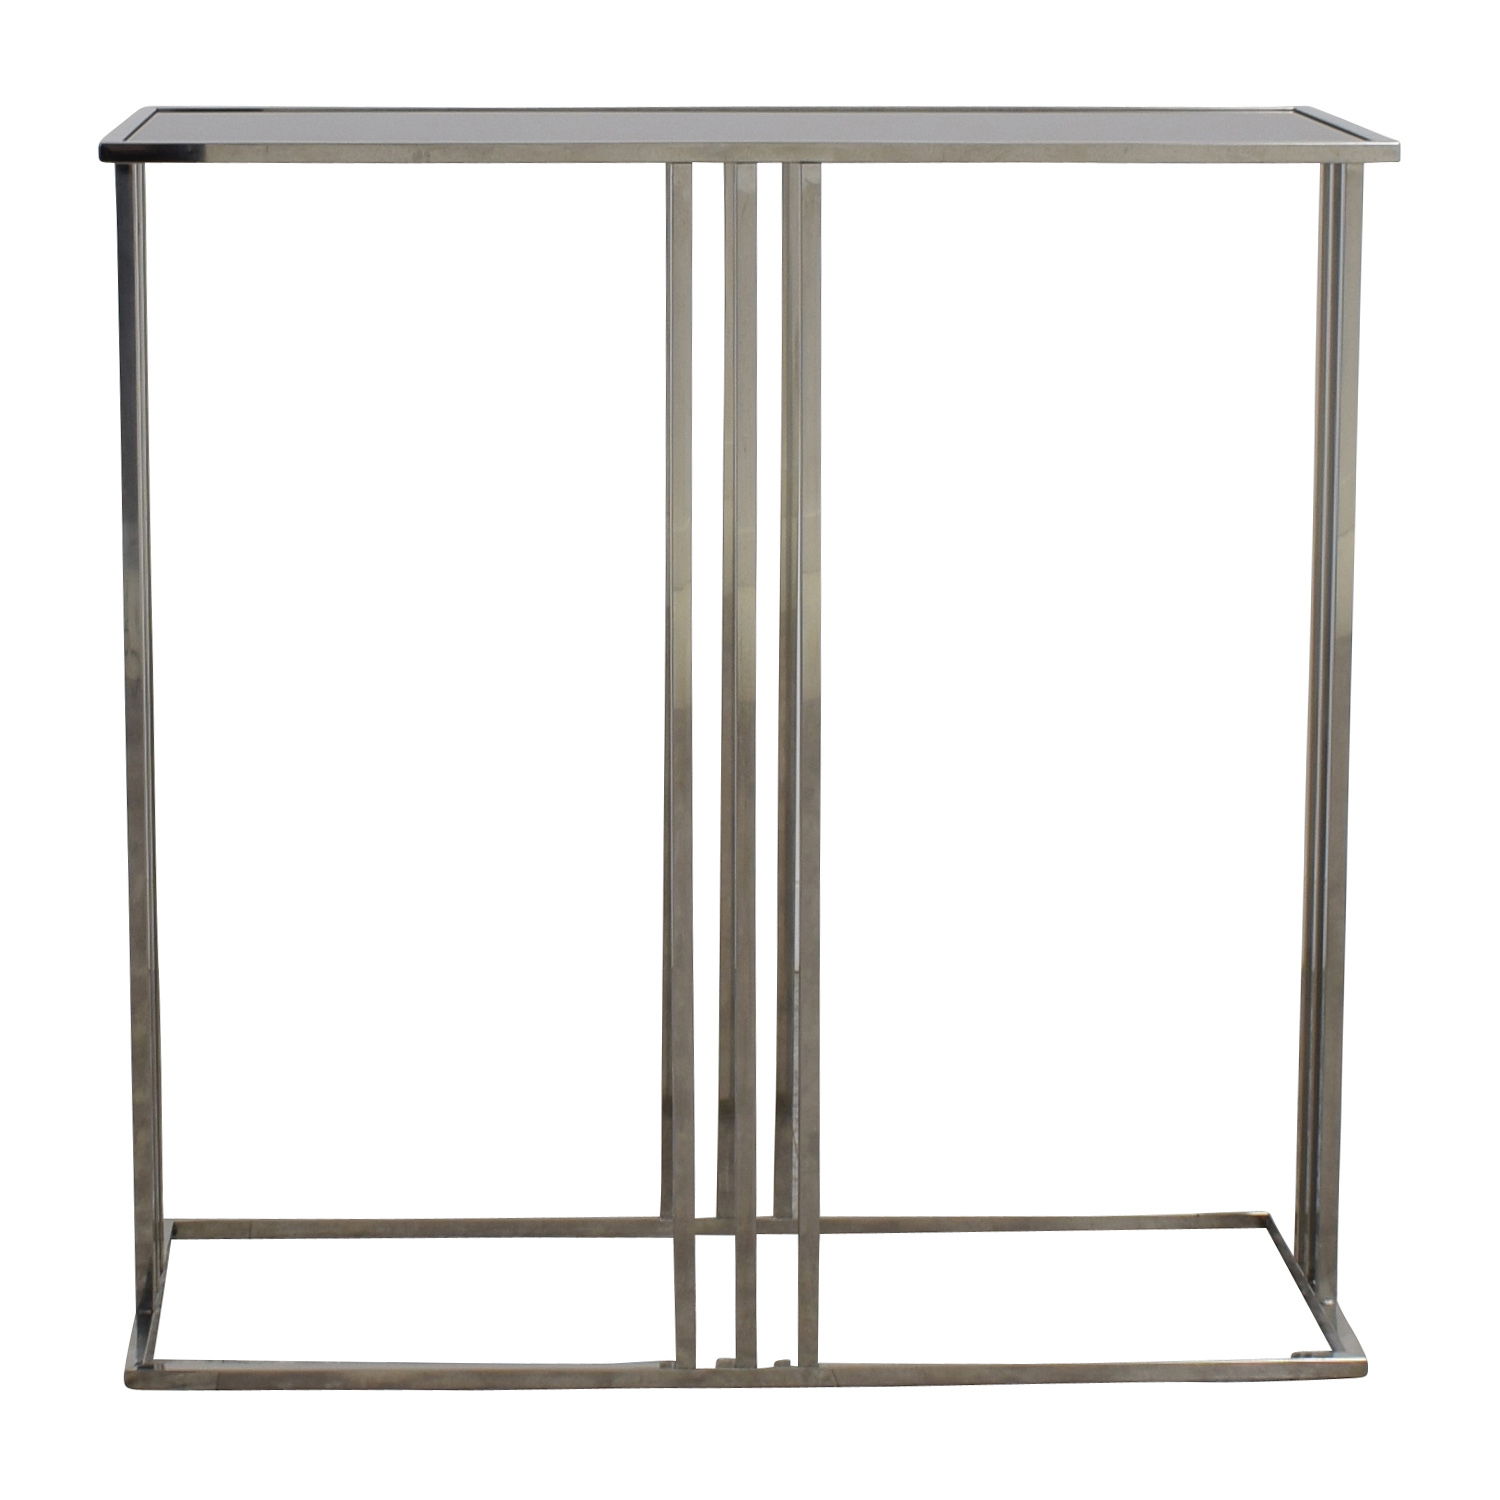 Ordinaire Marshalls Homegoods Marshalls Homegoods Black And Silver Console Entryway  Table Chrome / Black ...